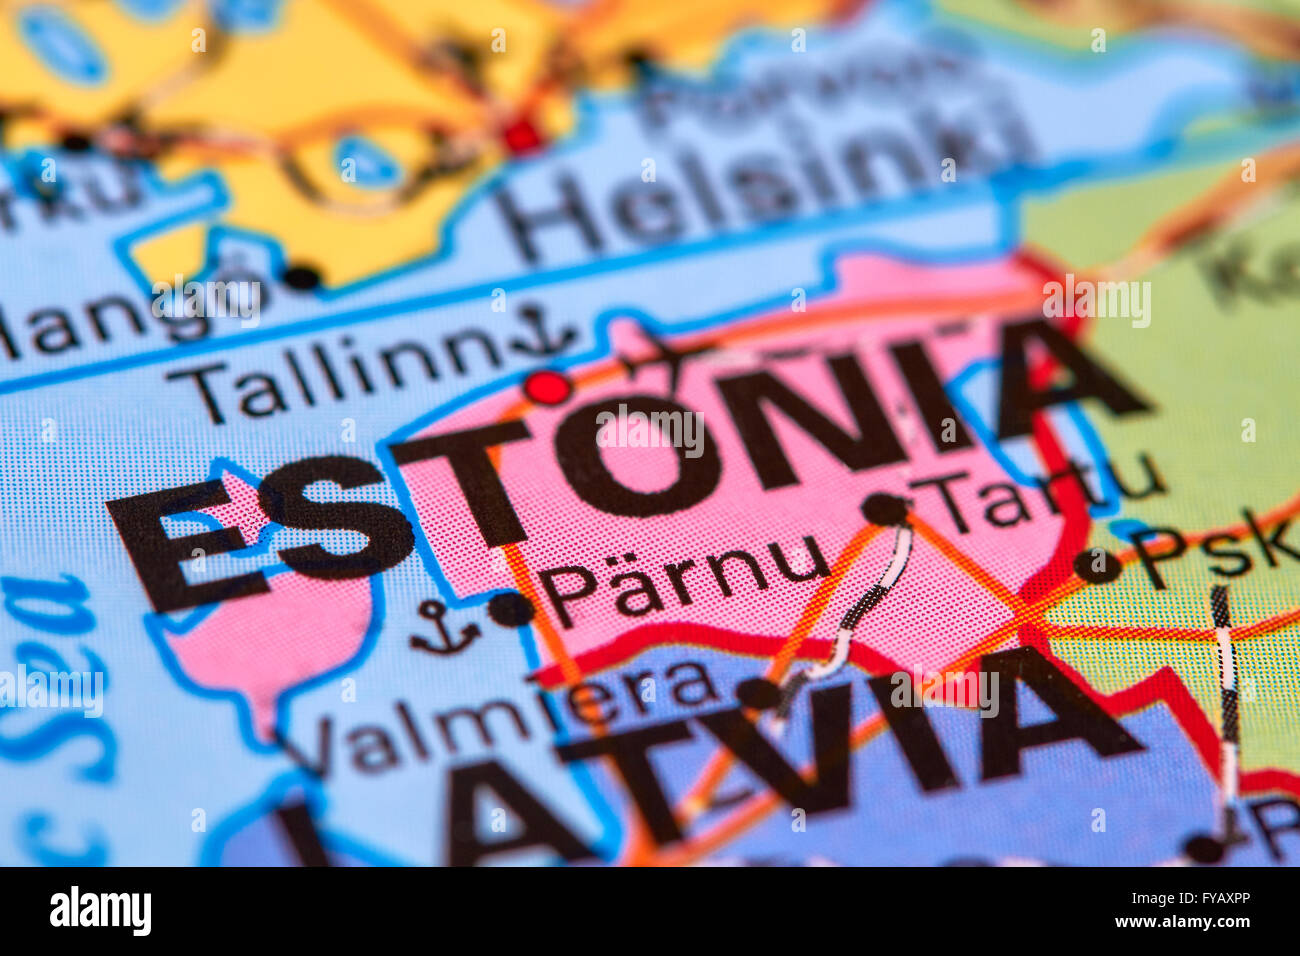 Estonia, Country in Europe on the World Map - Stock Image